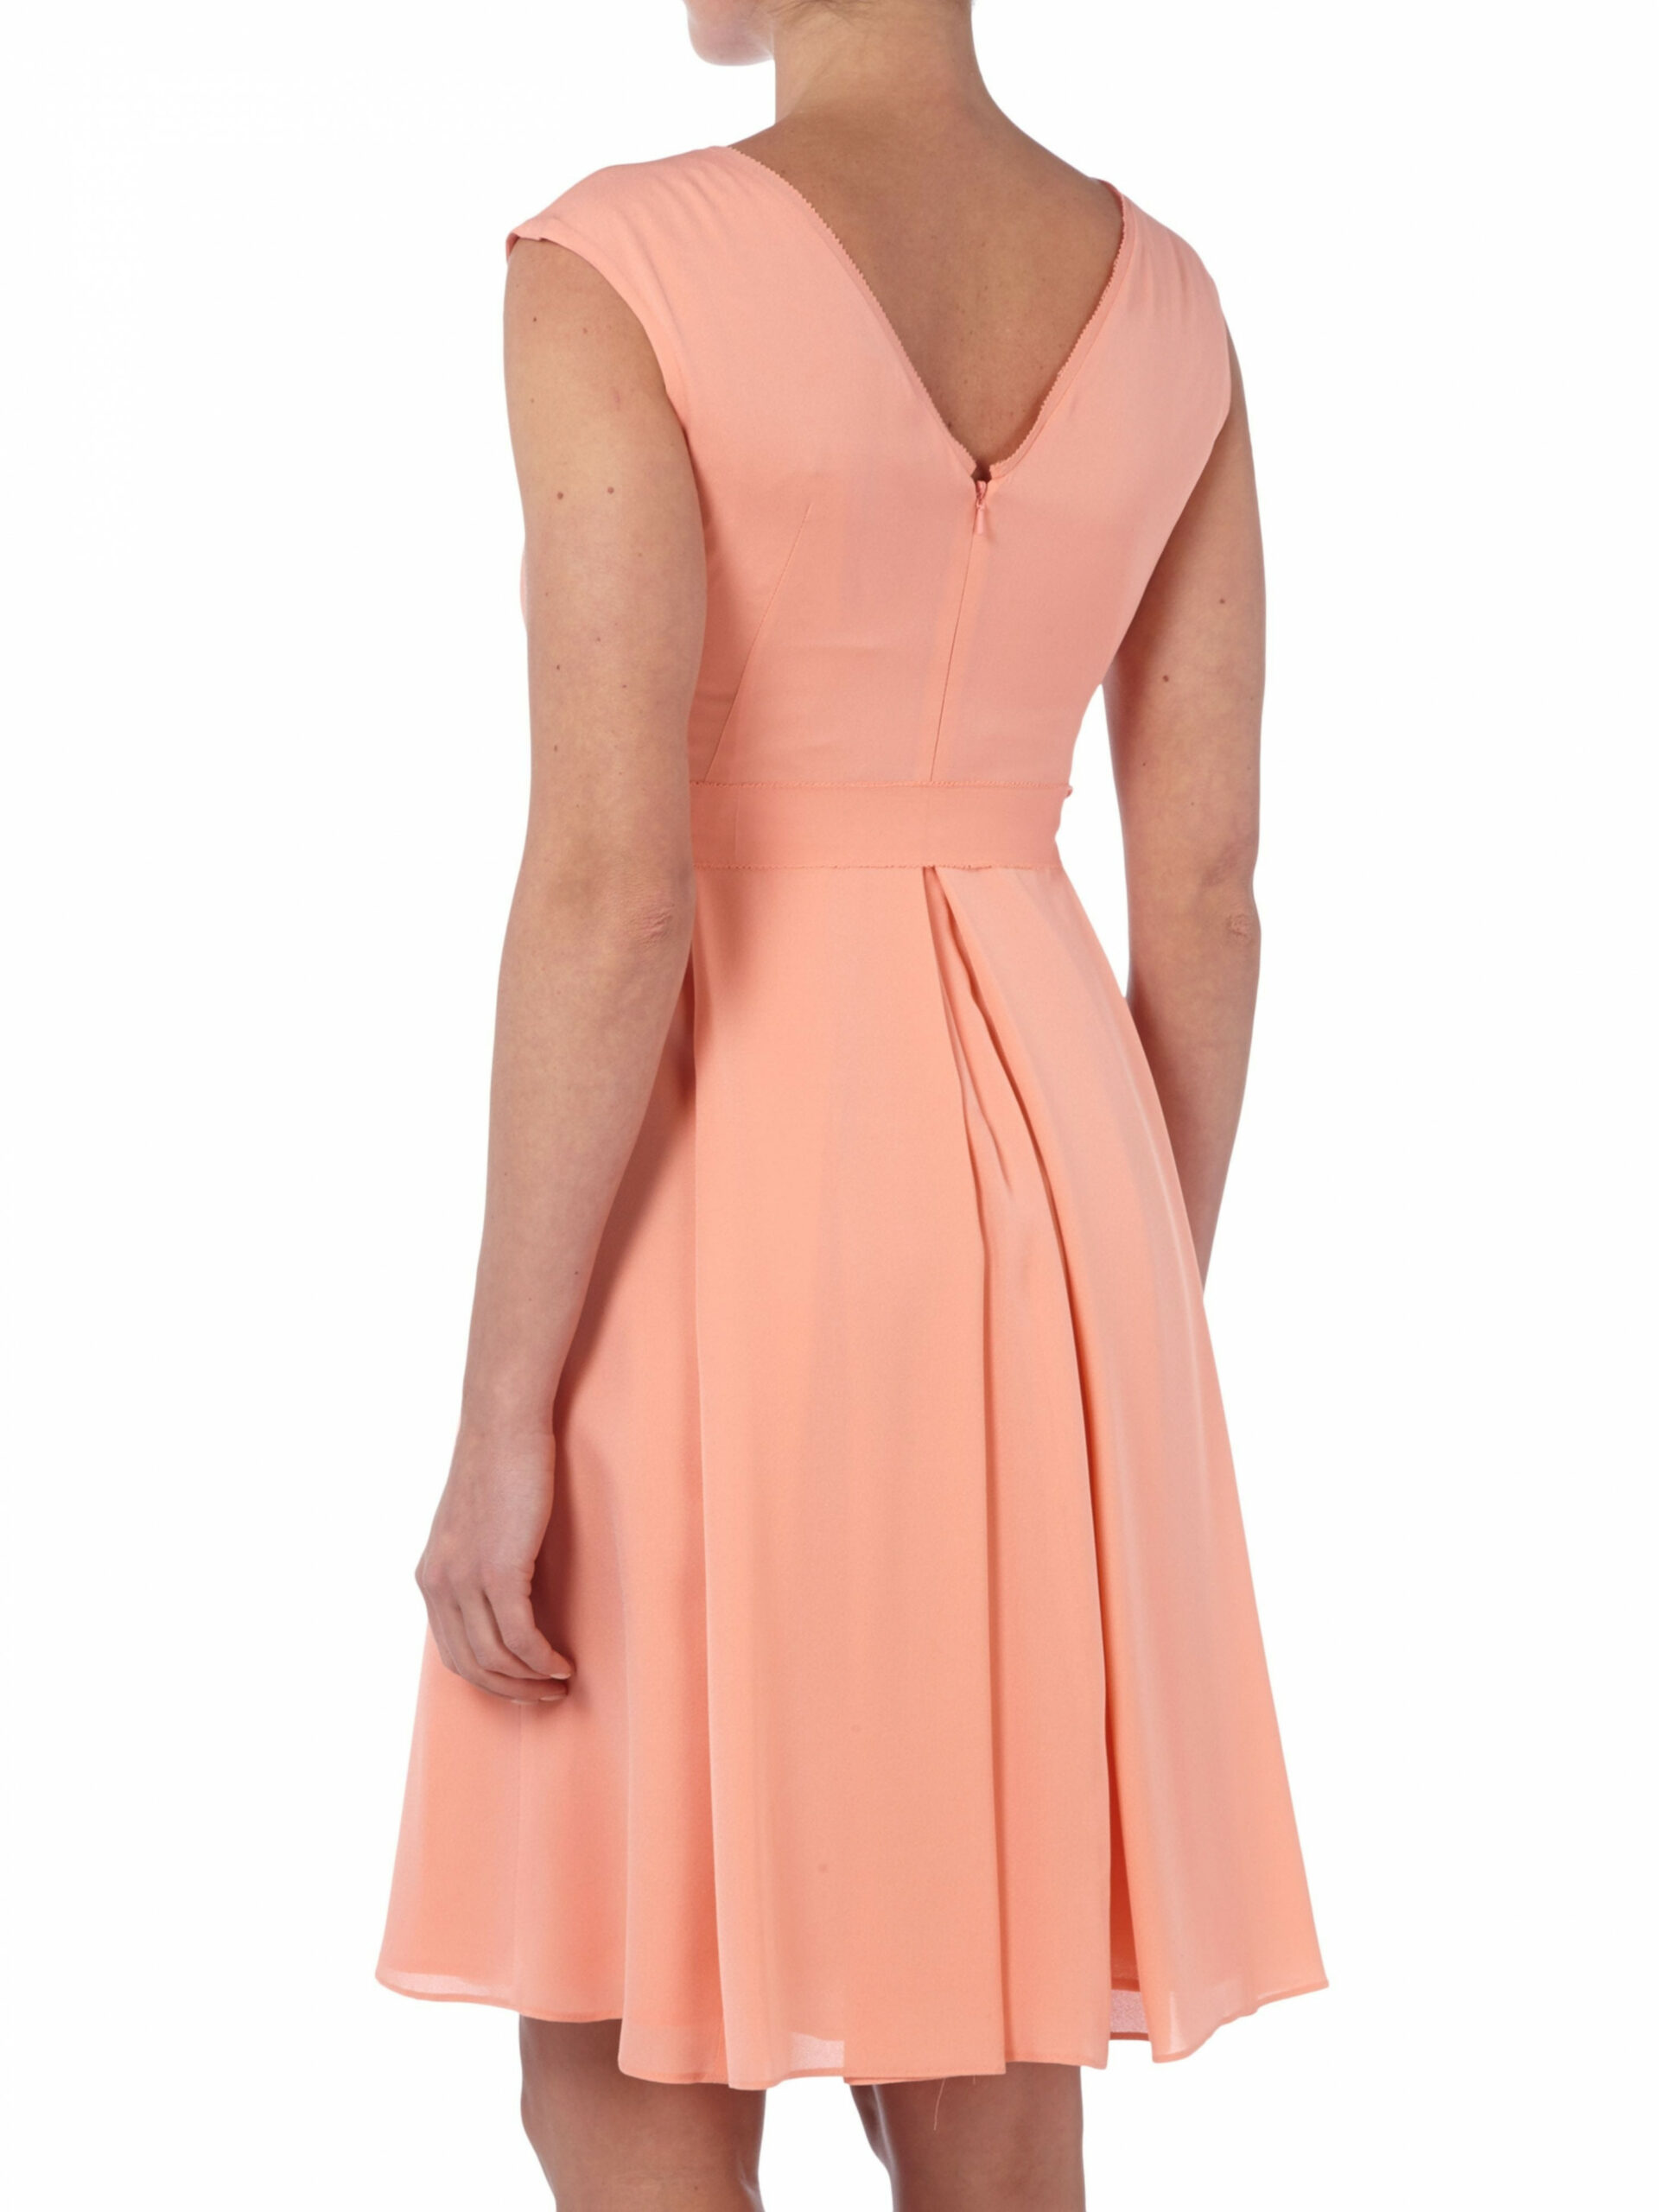 luxus kleid lachs boutique abendkleid